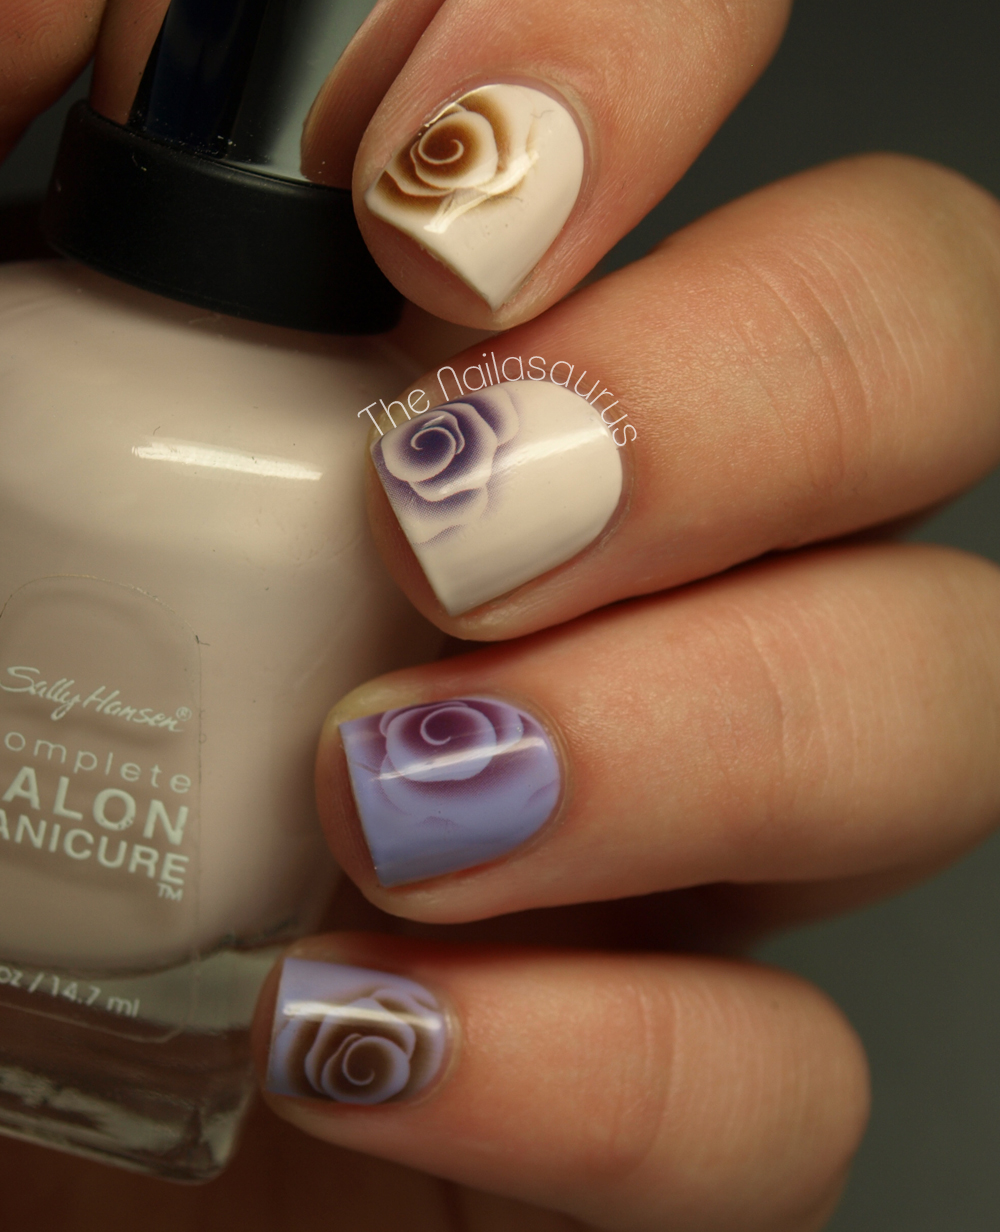 Nail Art Ideas nail art water decal : Nail Art Made Easy: Water Decals | more.com